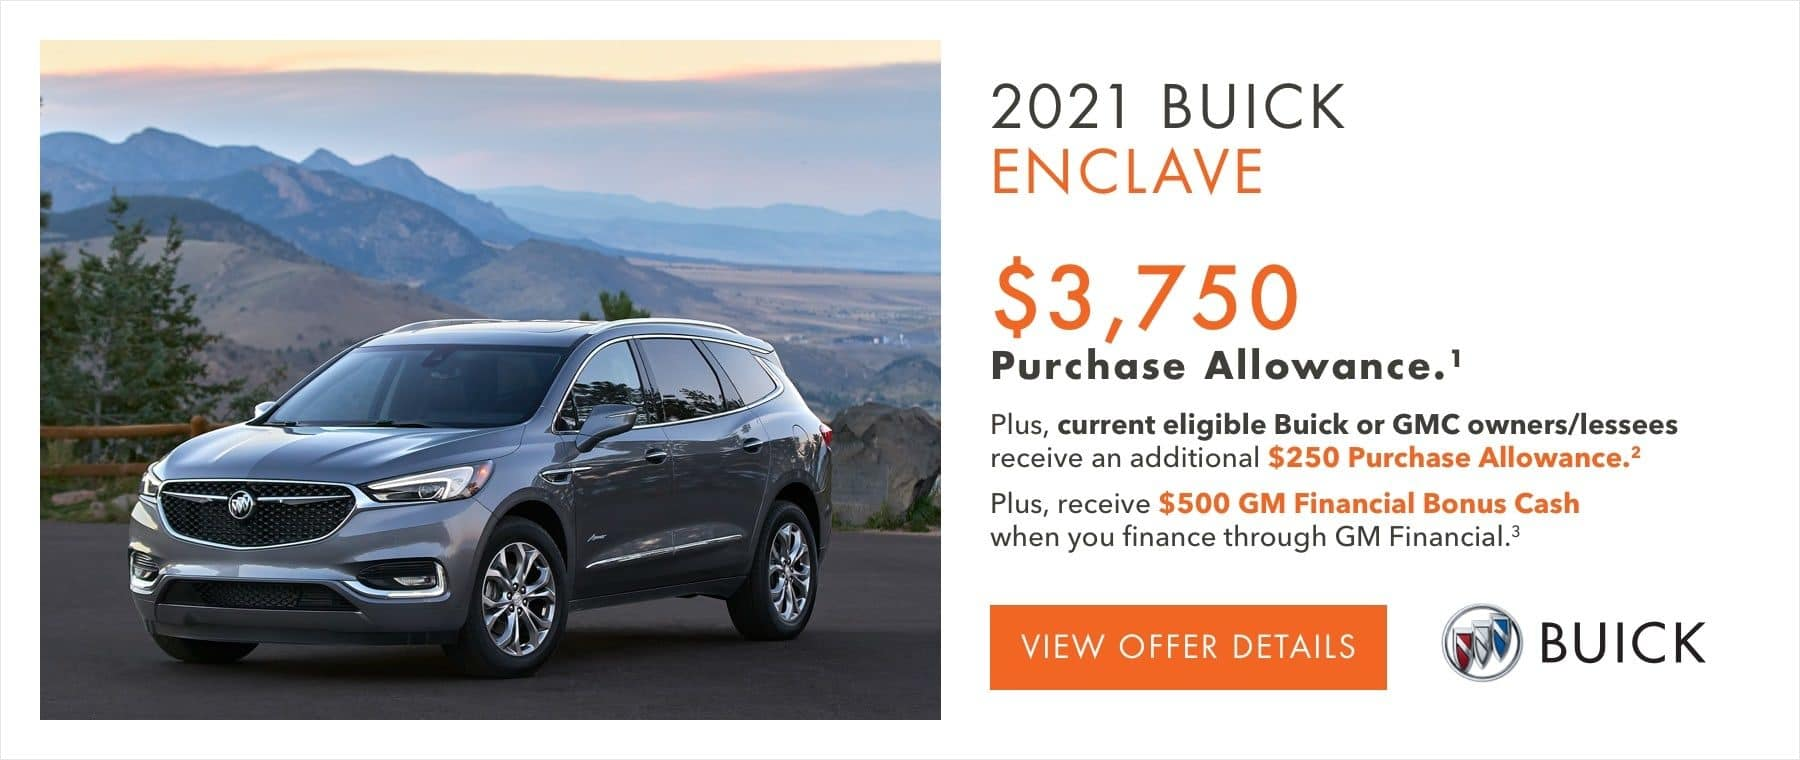 $3,750 Purchase Allowance.1 Plus, current eligible Buick or GMC owners/lessees receive an additional $250 Purchase Allowance.2 Plus, receive $500 GM Financial Bonus Cash when you finance through GM Financial.3